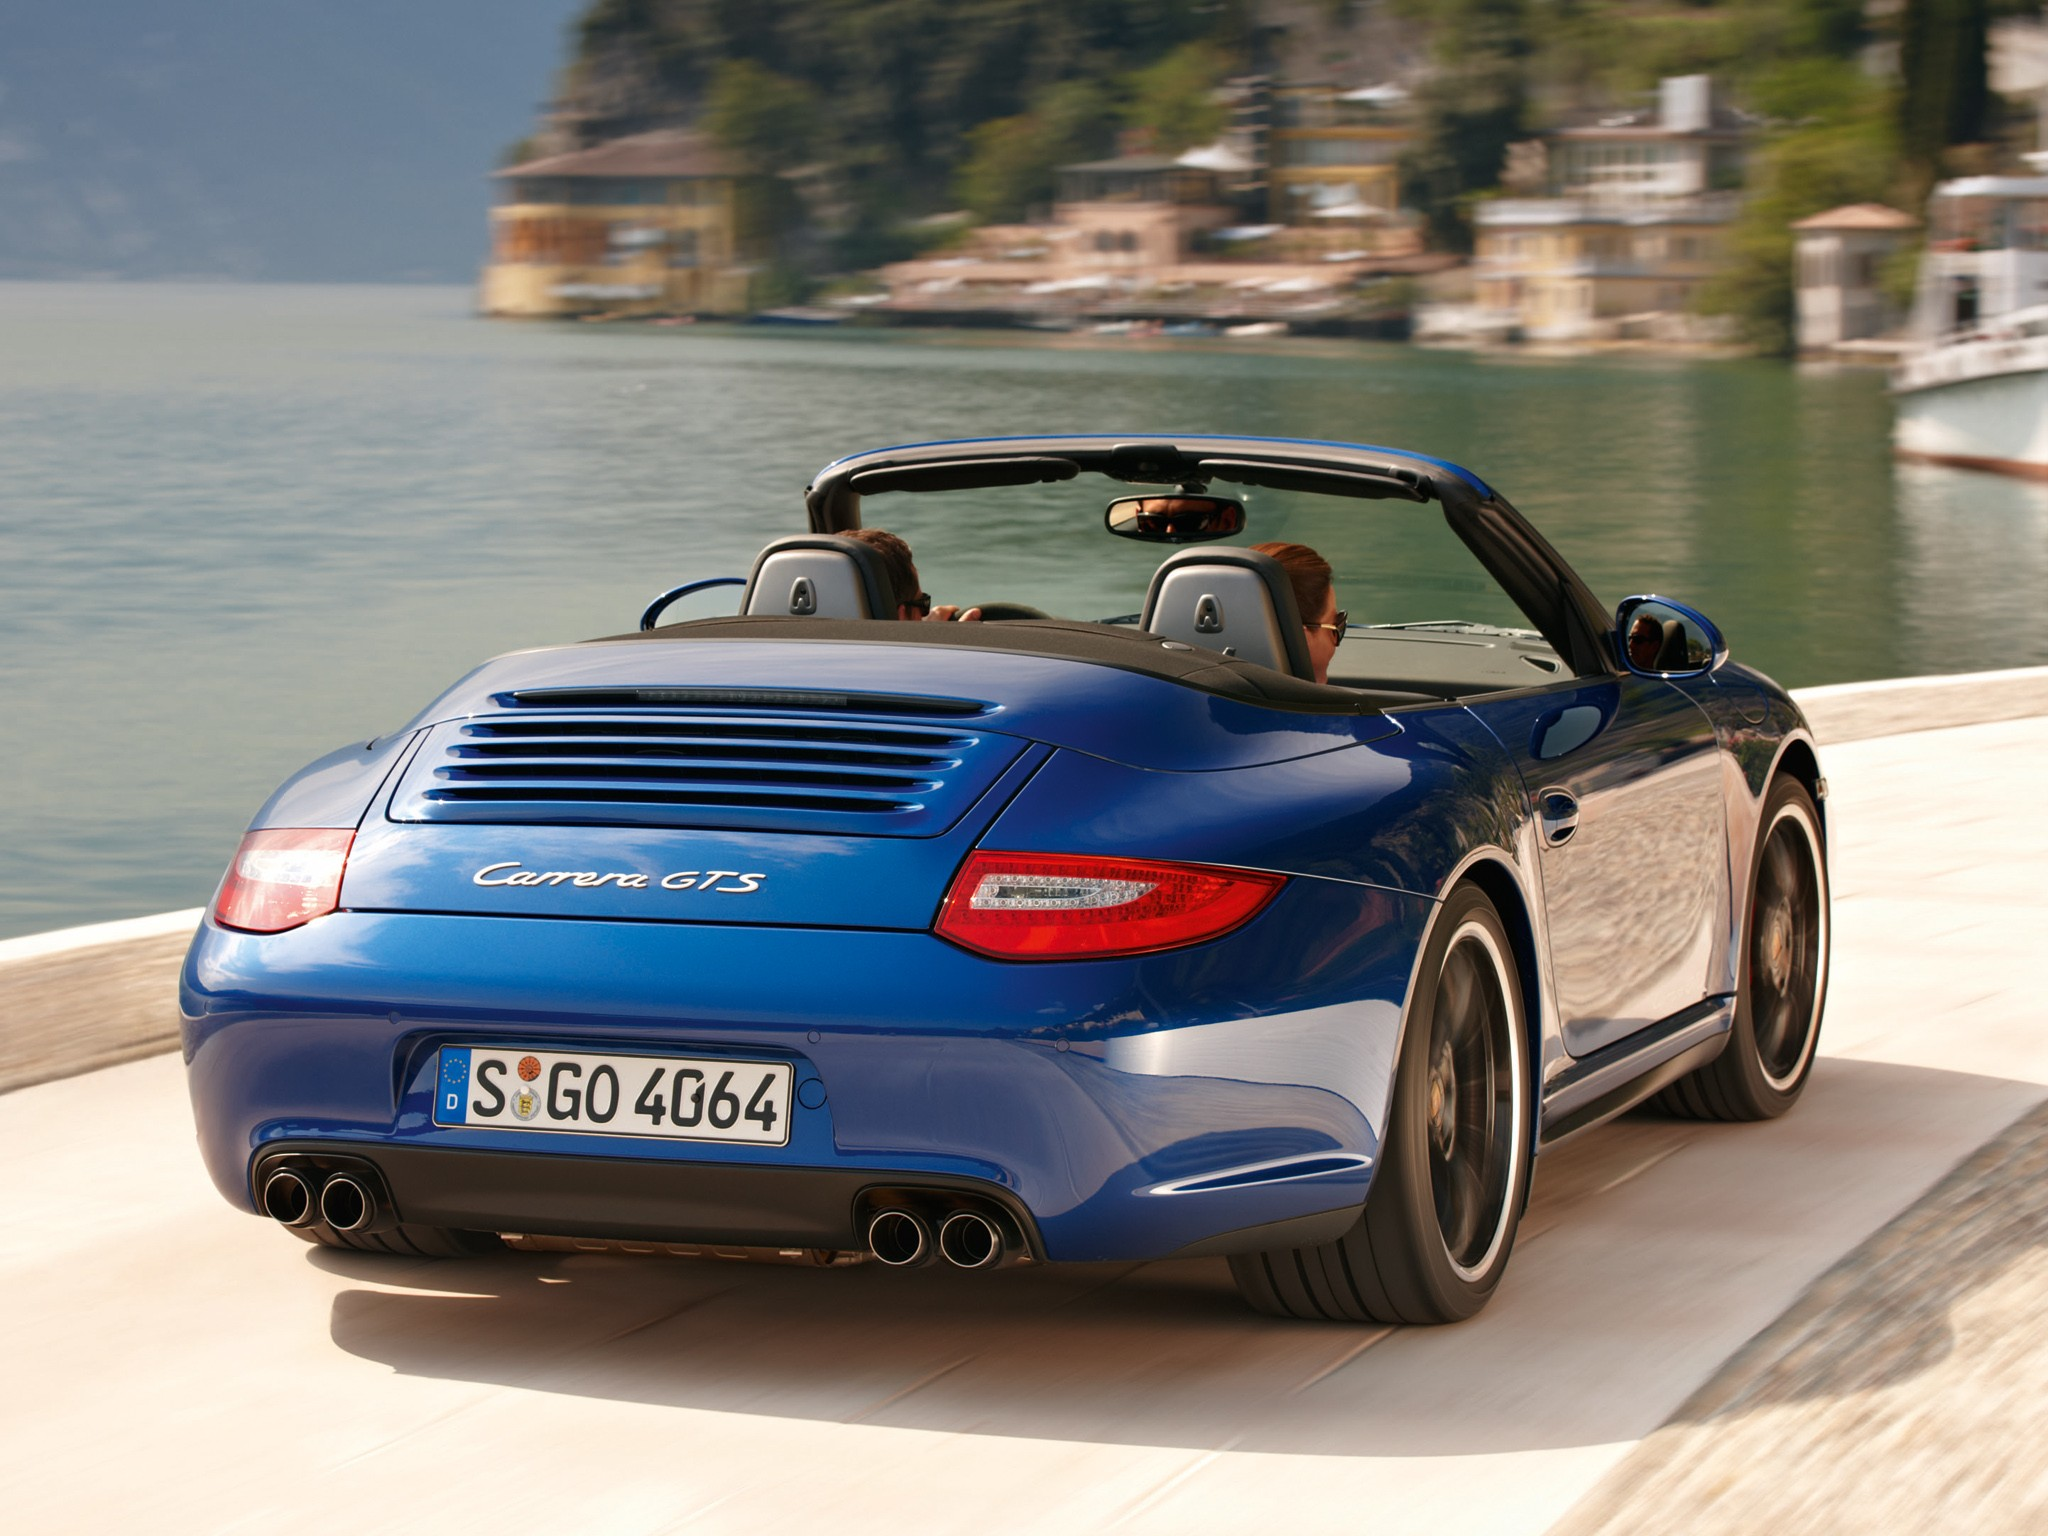 porsche 911 carrera gts cabriolet 997 2010 2011 autoevolution. Black Bedroom Furniture Sets. Home Design Ideas